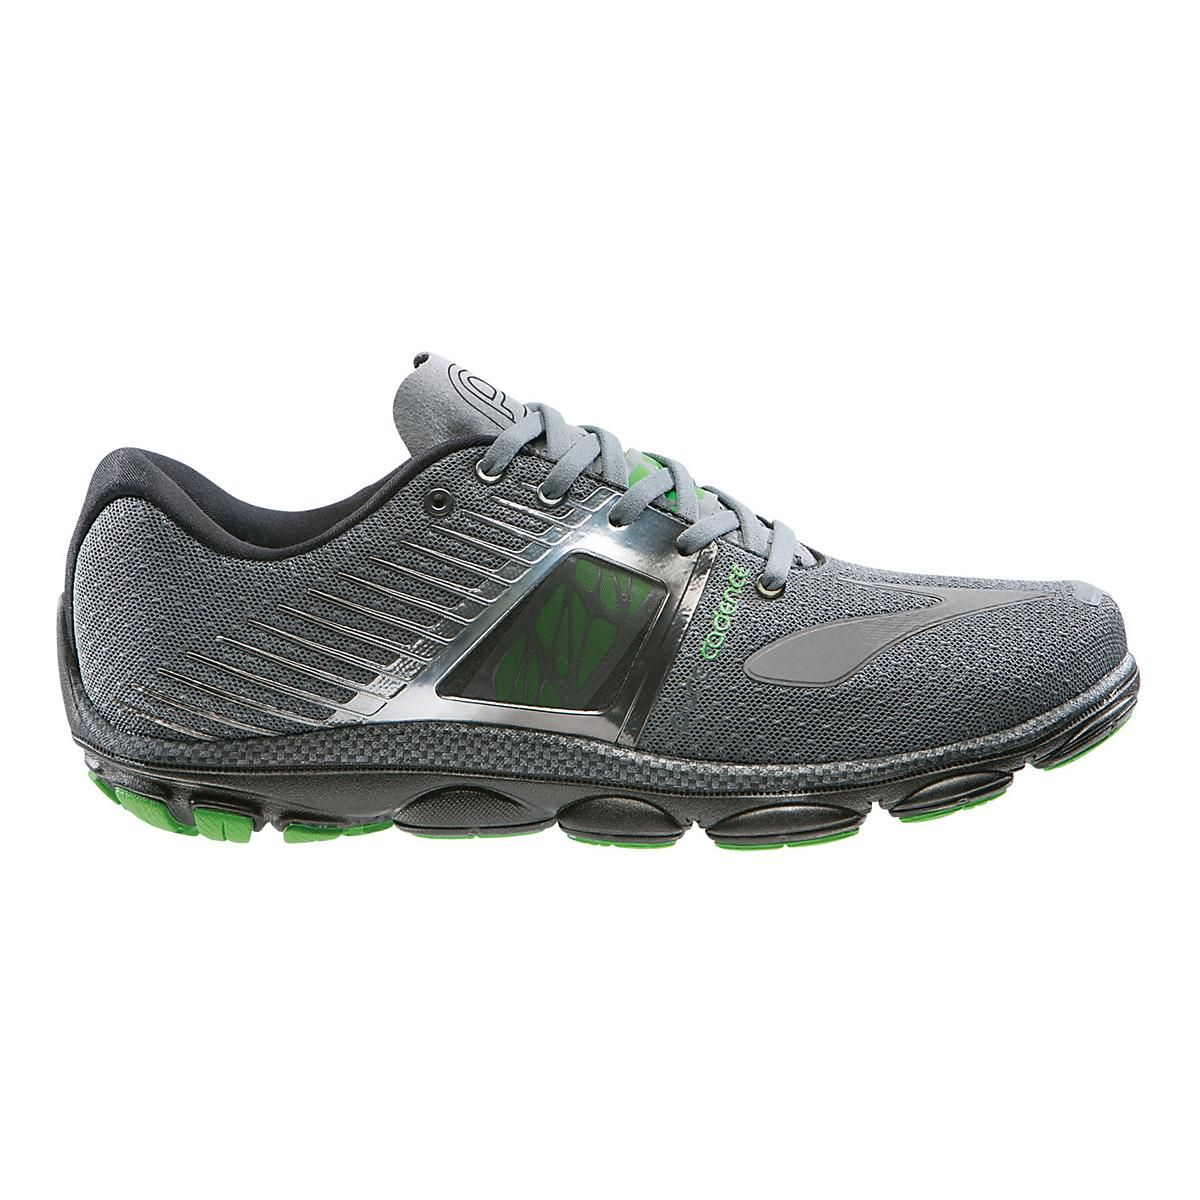 PureCadence 4 Running shoes for men, Running shoes, Shoes